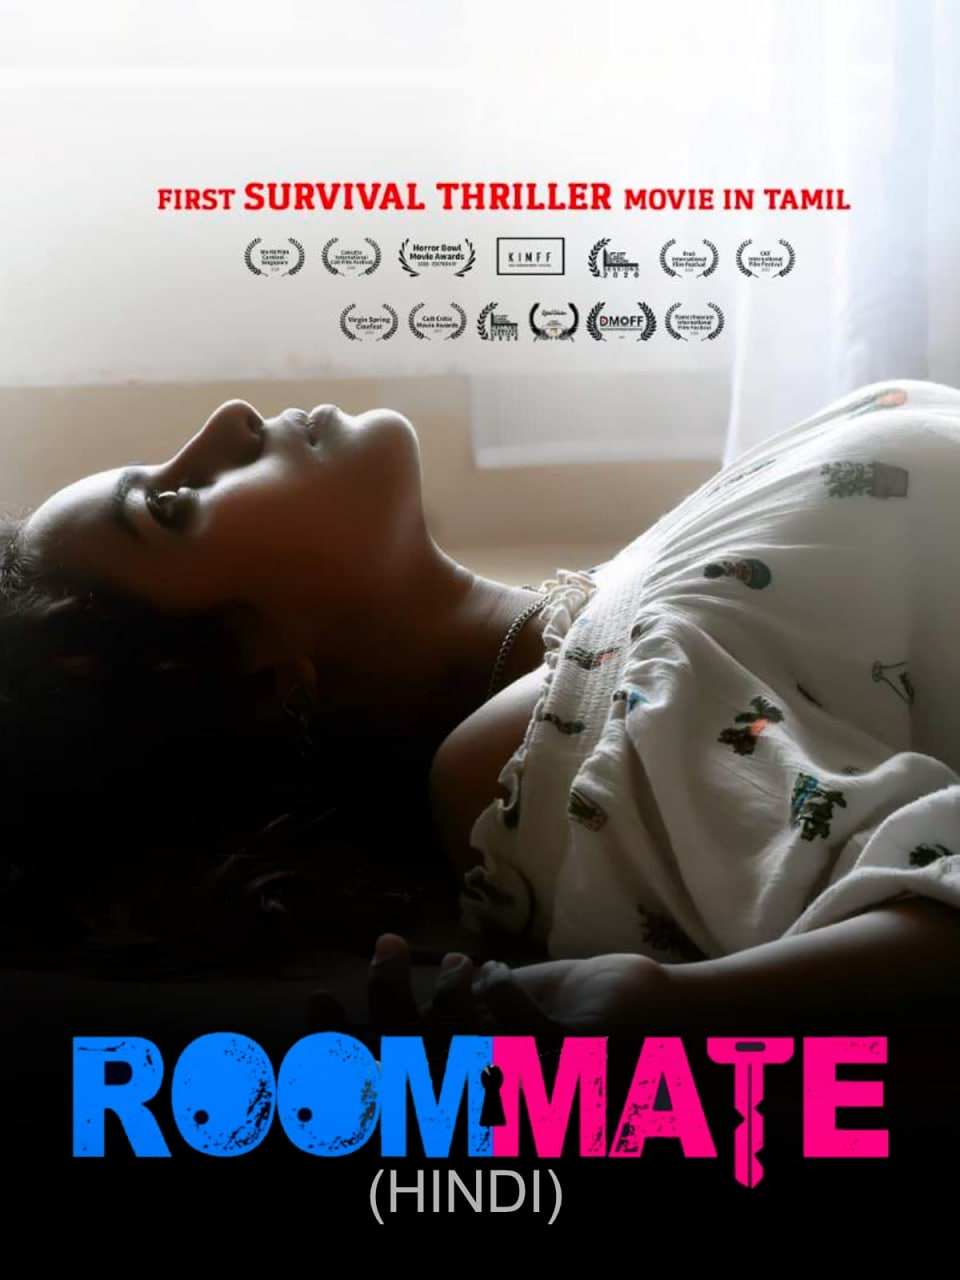 Roommate (2021) 720p HDRip Hindi Dubbed Full South Movie x264 AAC ESubs [850MB]